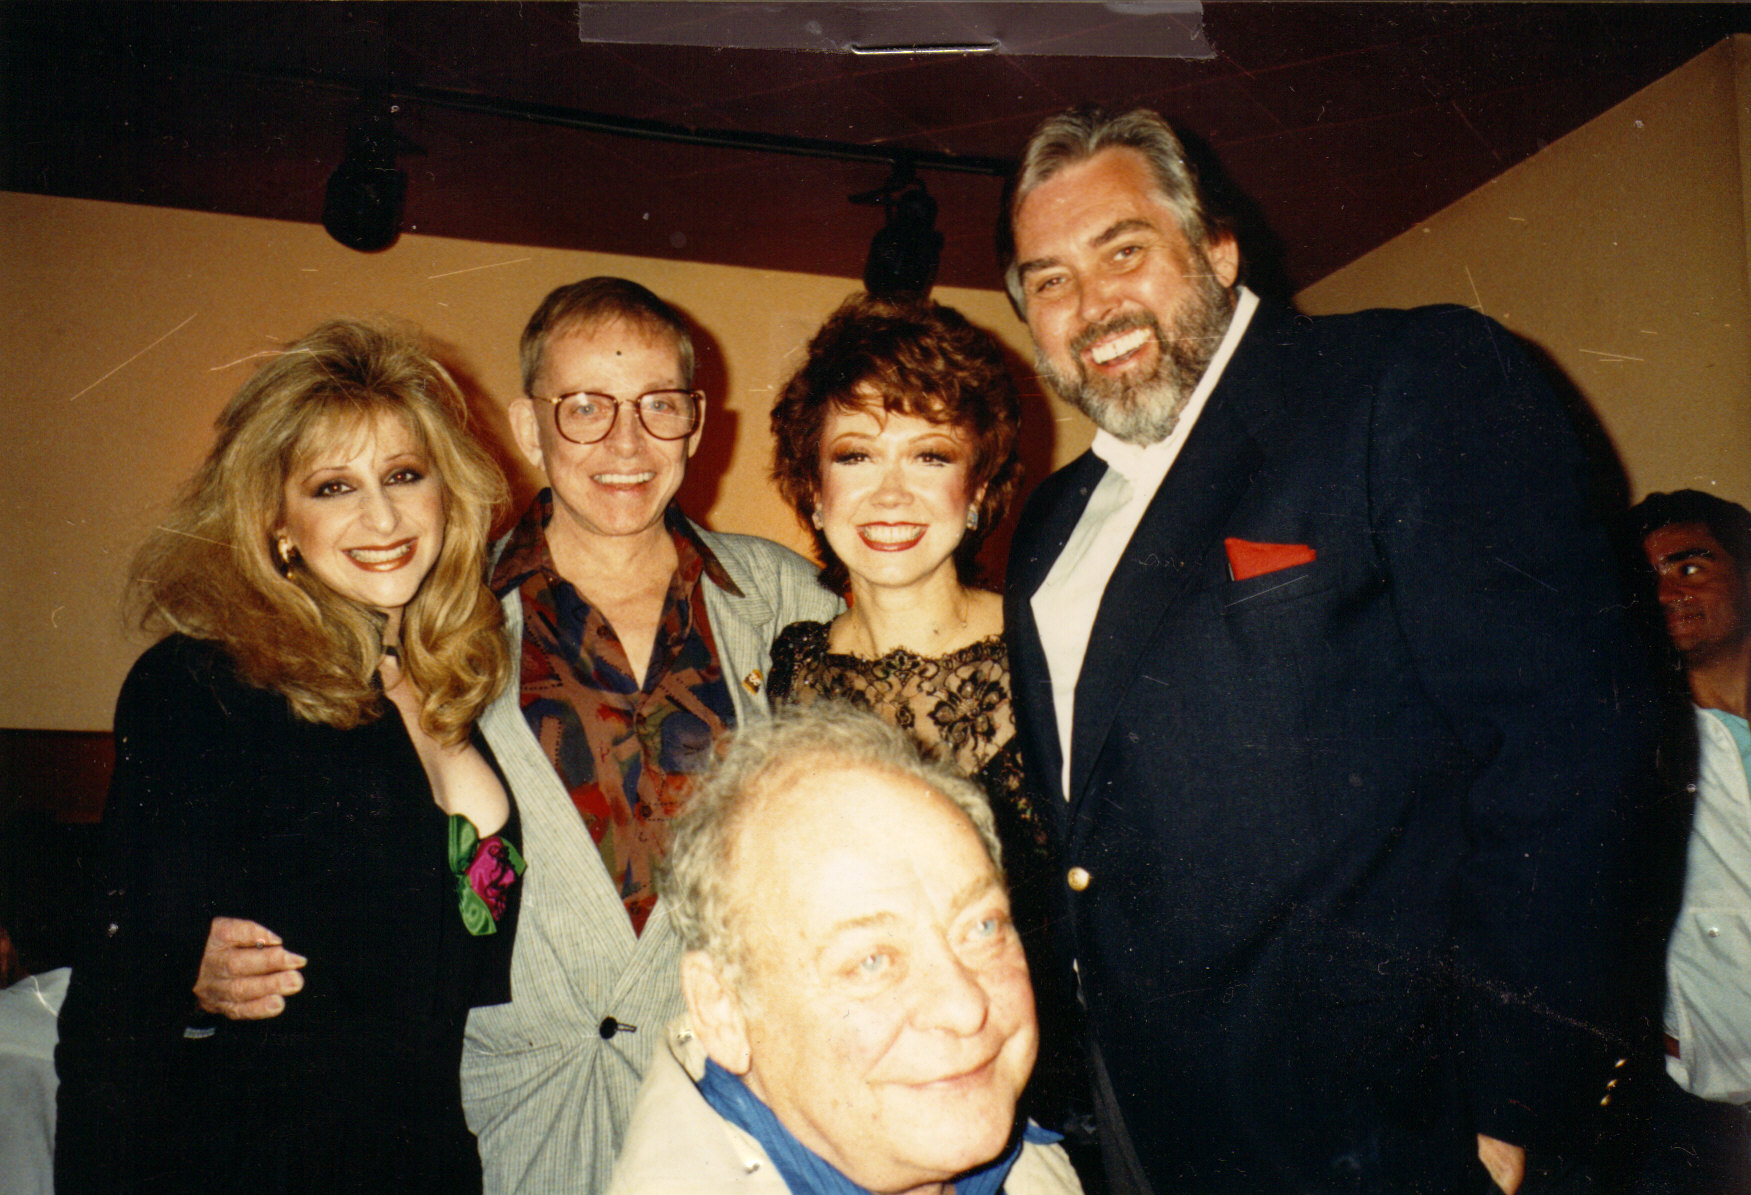 Jim Brochu, Julie Budd, Charles Pierce, Stand Freeman, Donna McKechnie